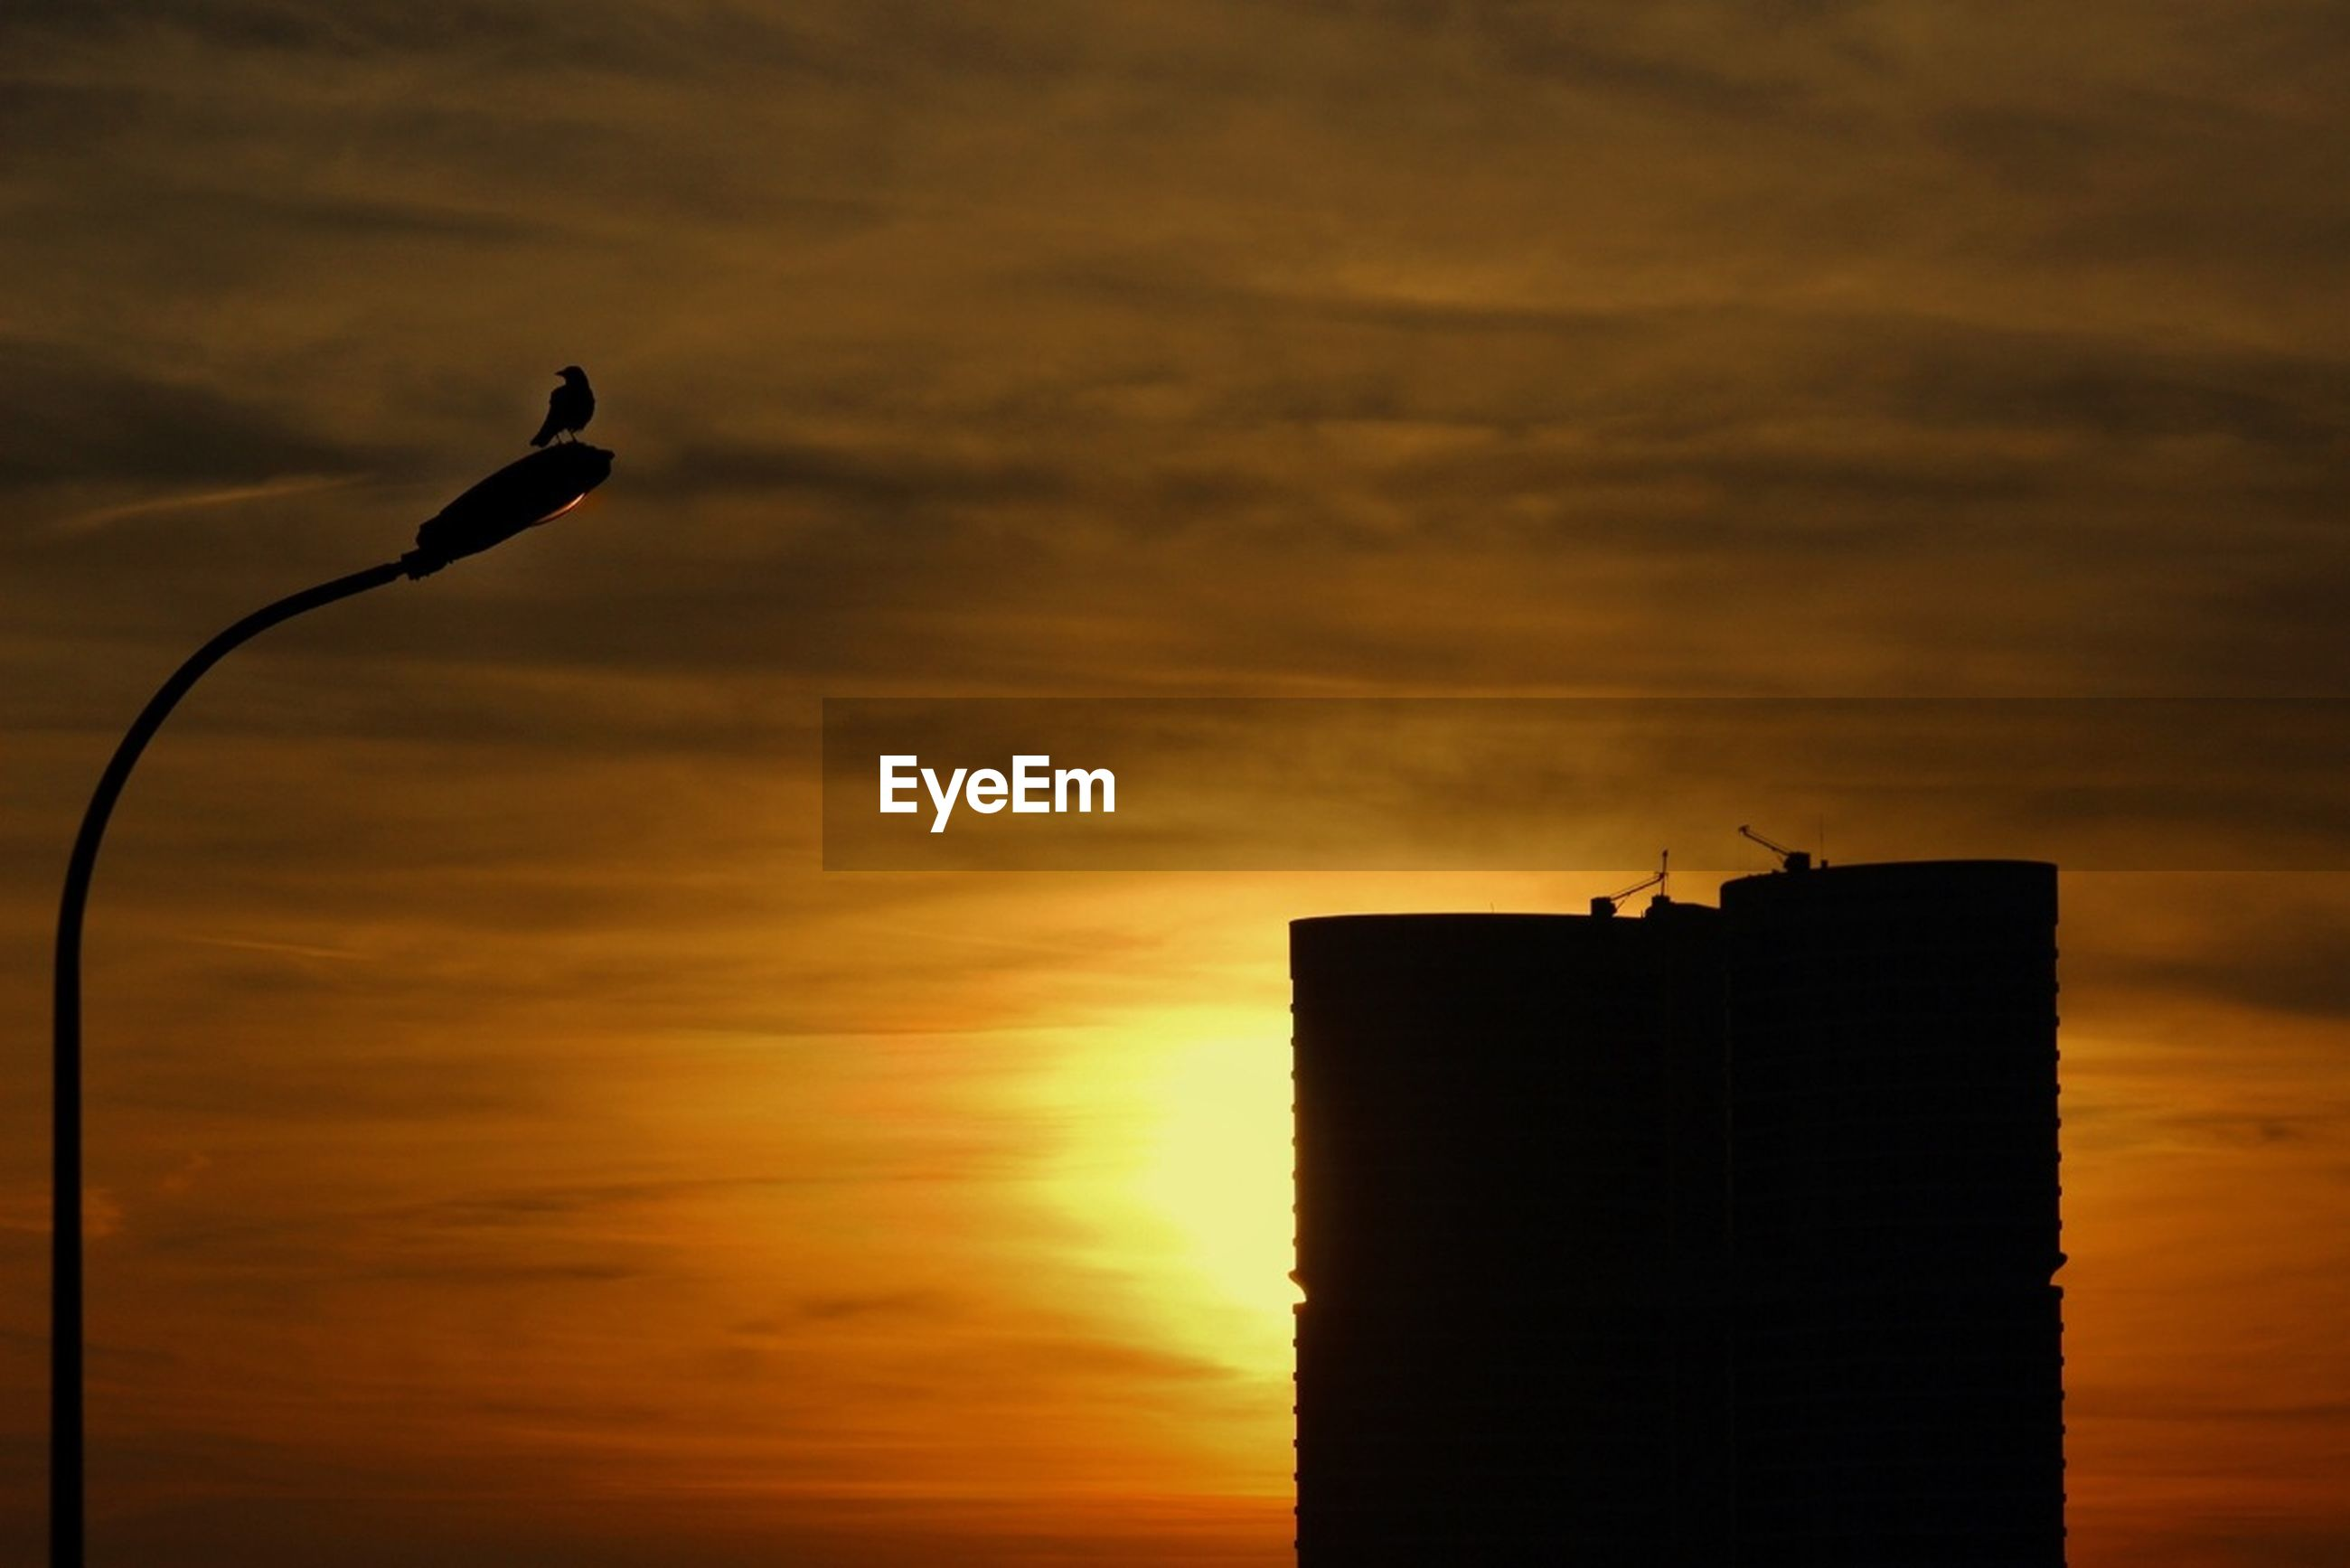 sunset, sky, silhouette, low angle view, bird, orange color, animal themes, one animal, animals in the wild, flying, cloud - sky, wildlife, built structure, building exterior, architecture, cloud, nature, beauty in nature, perching, sun